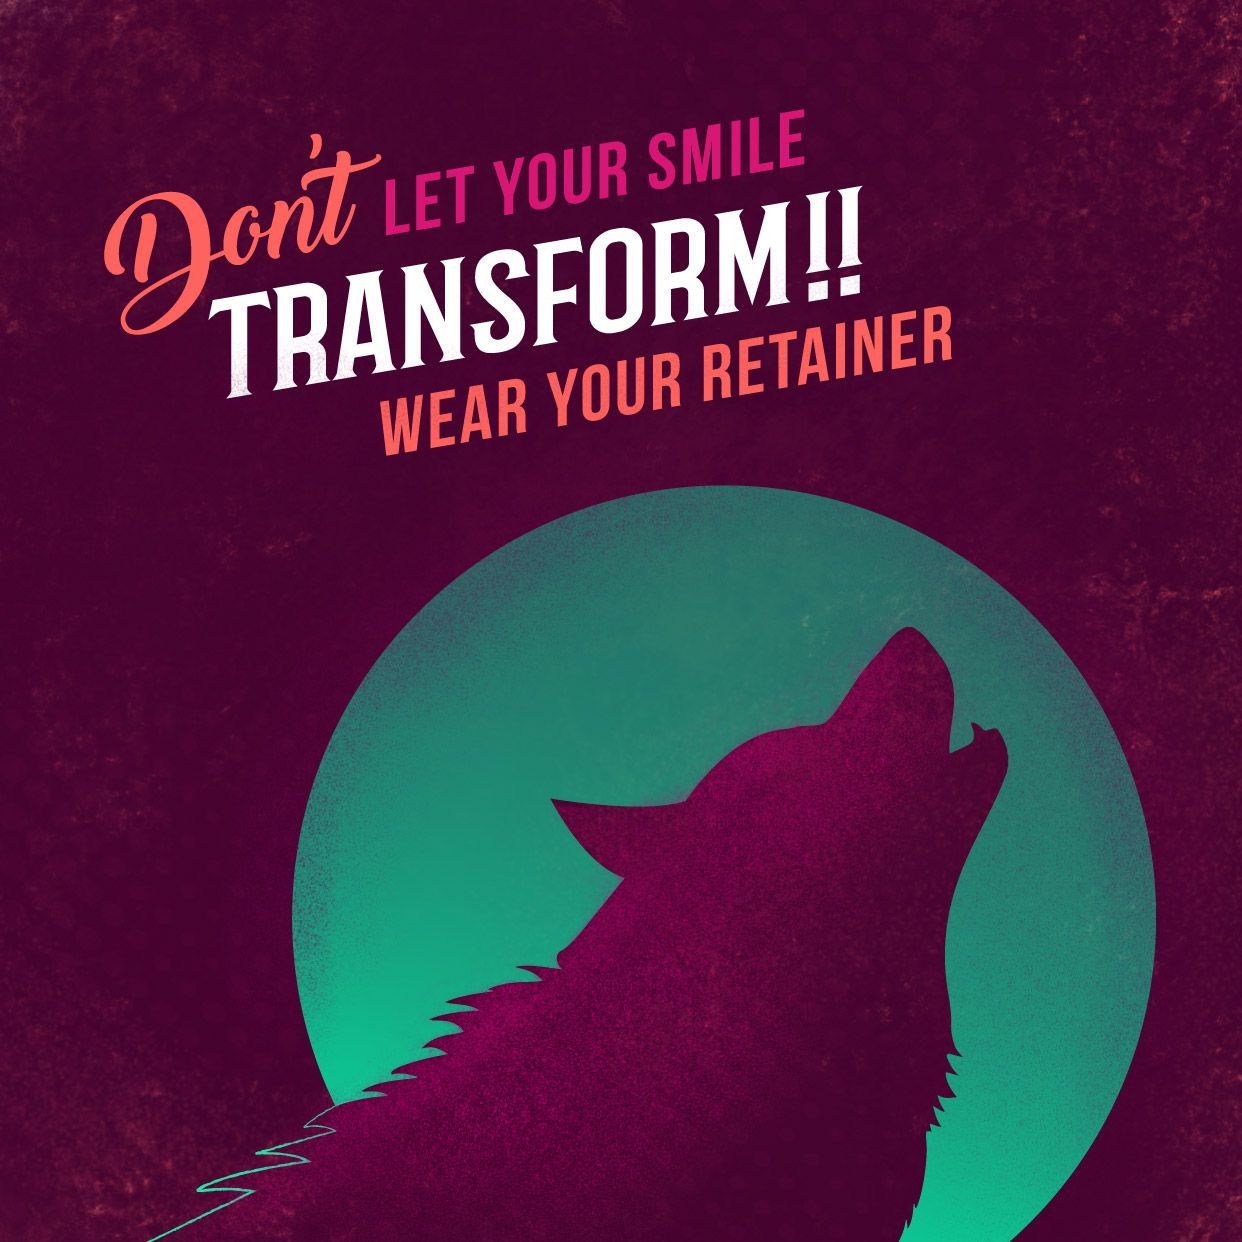 BY NOT WEARING YOUR retainer at night, your teeth are